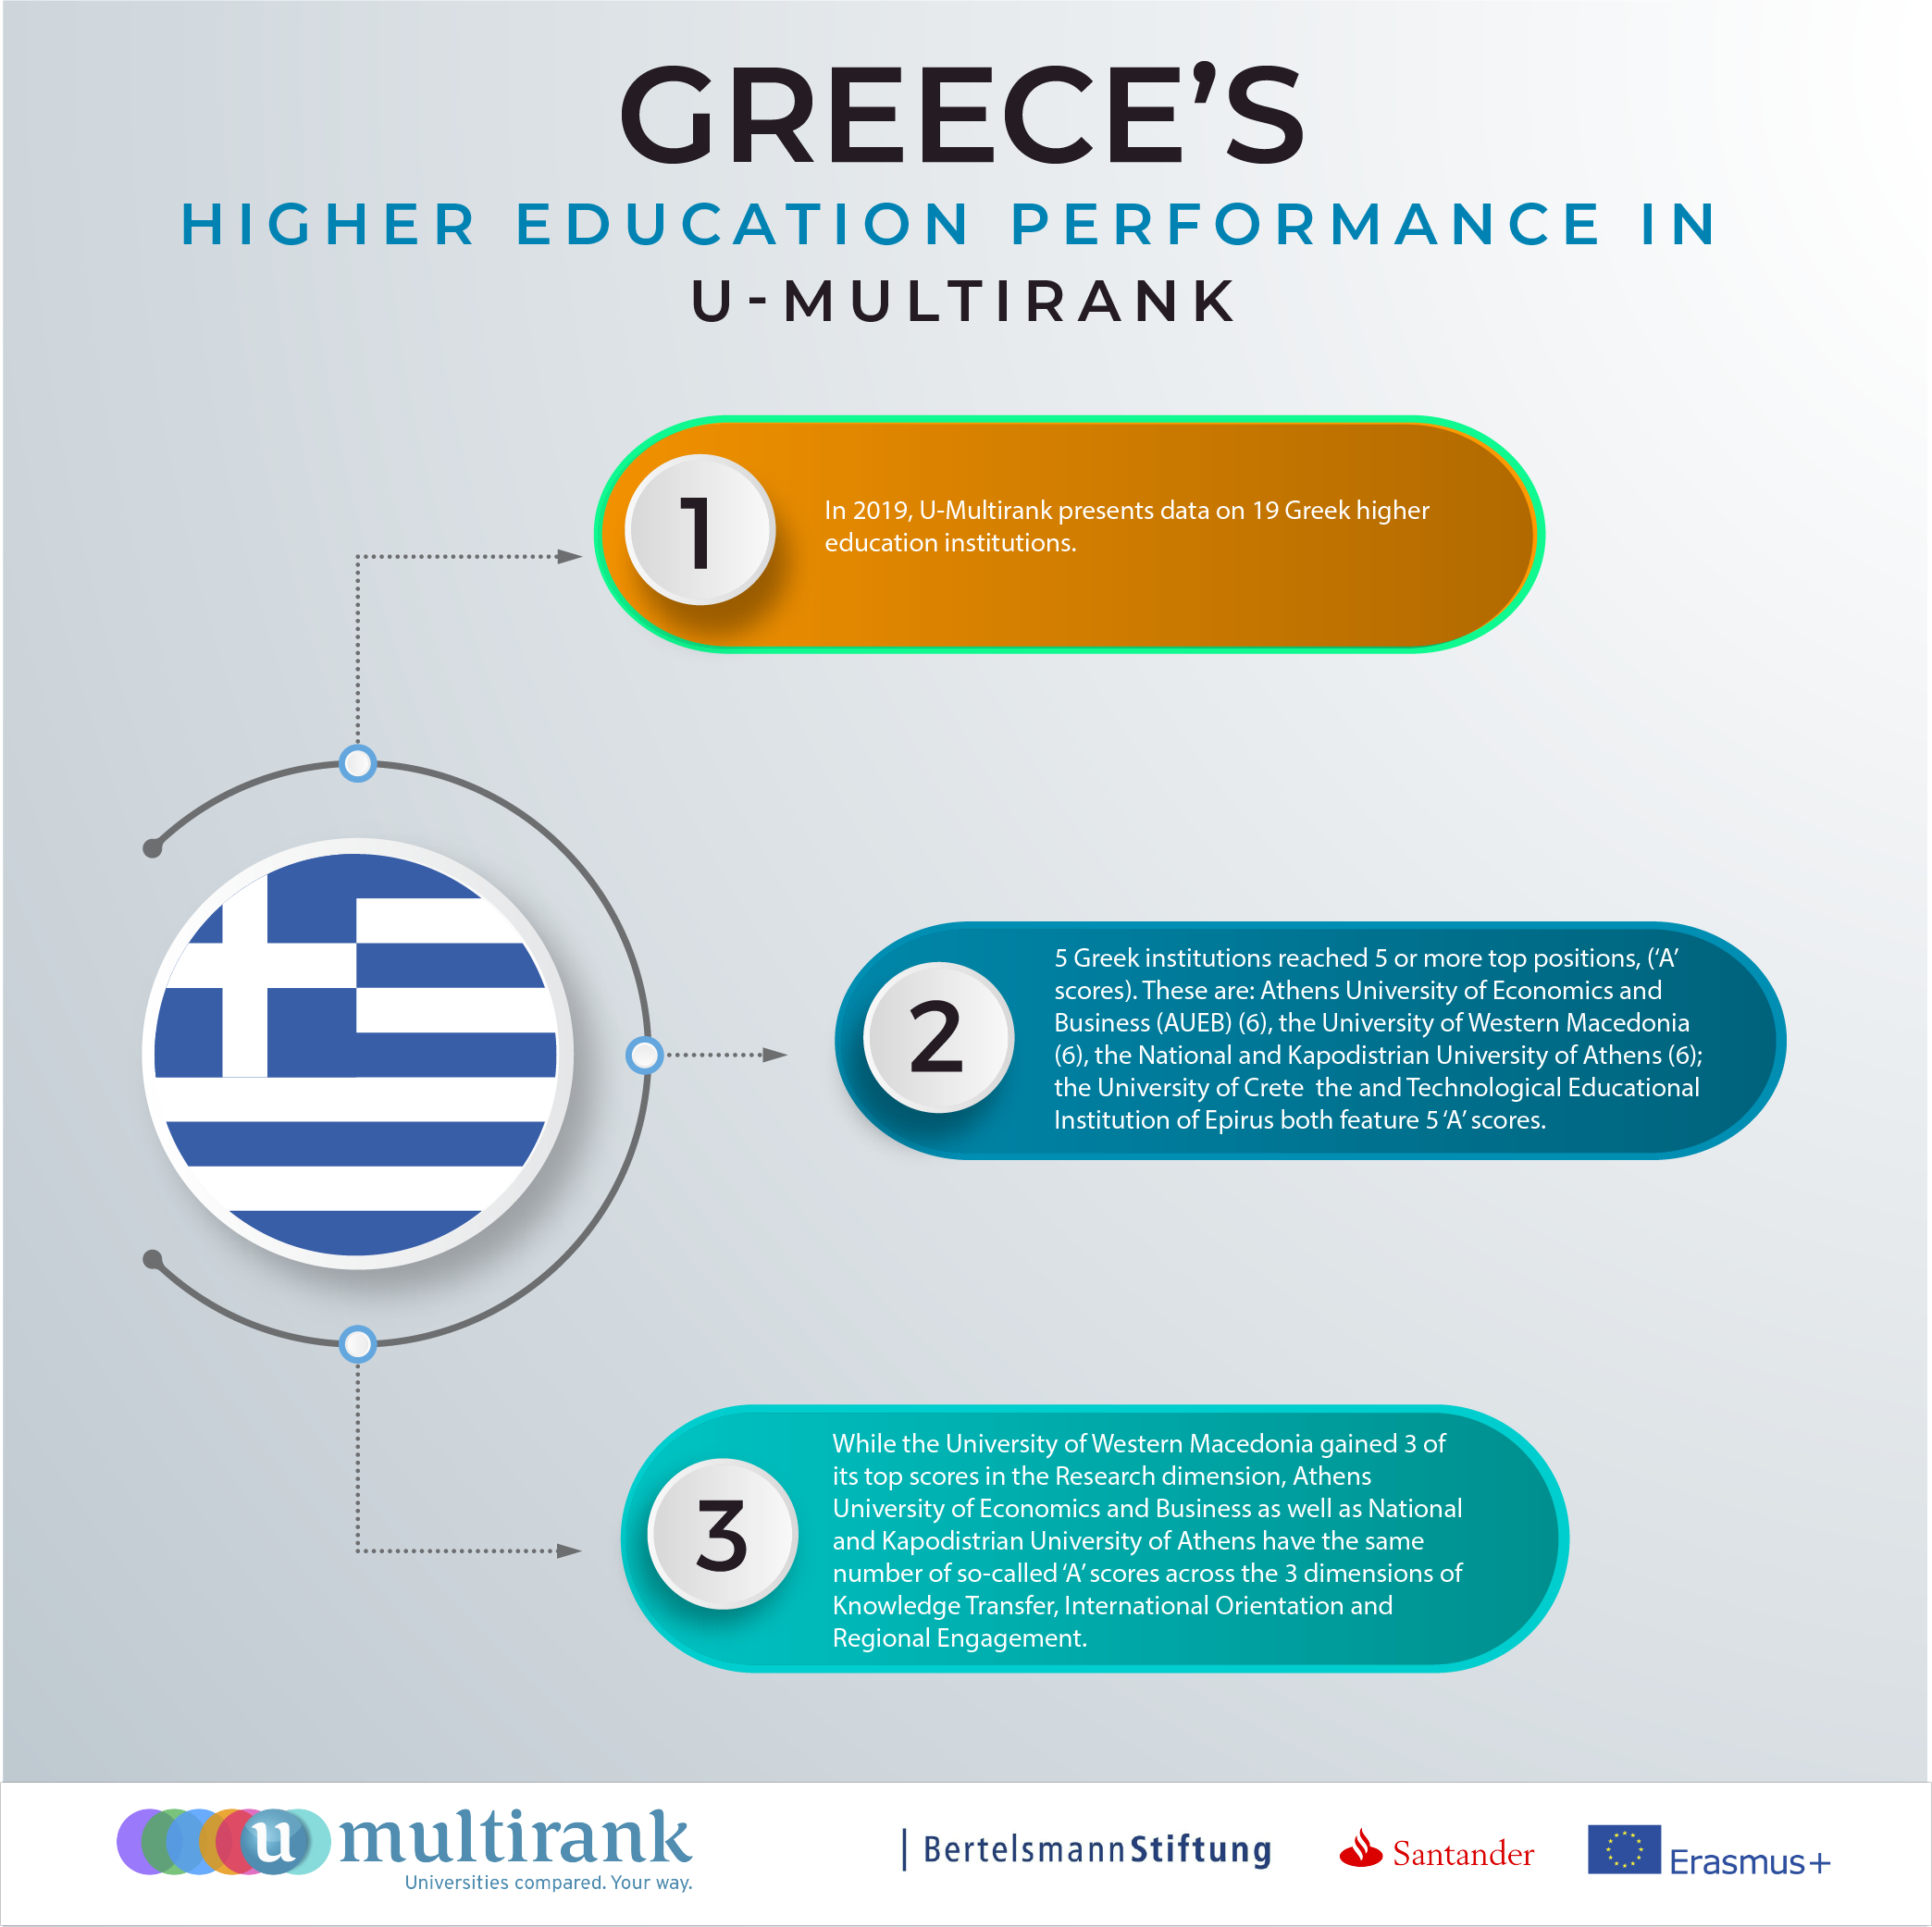 Greece's Higher Education Performance in U-Multirank